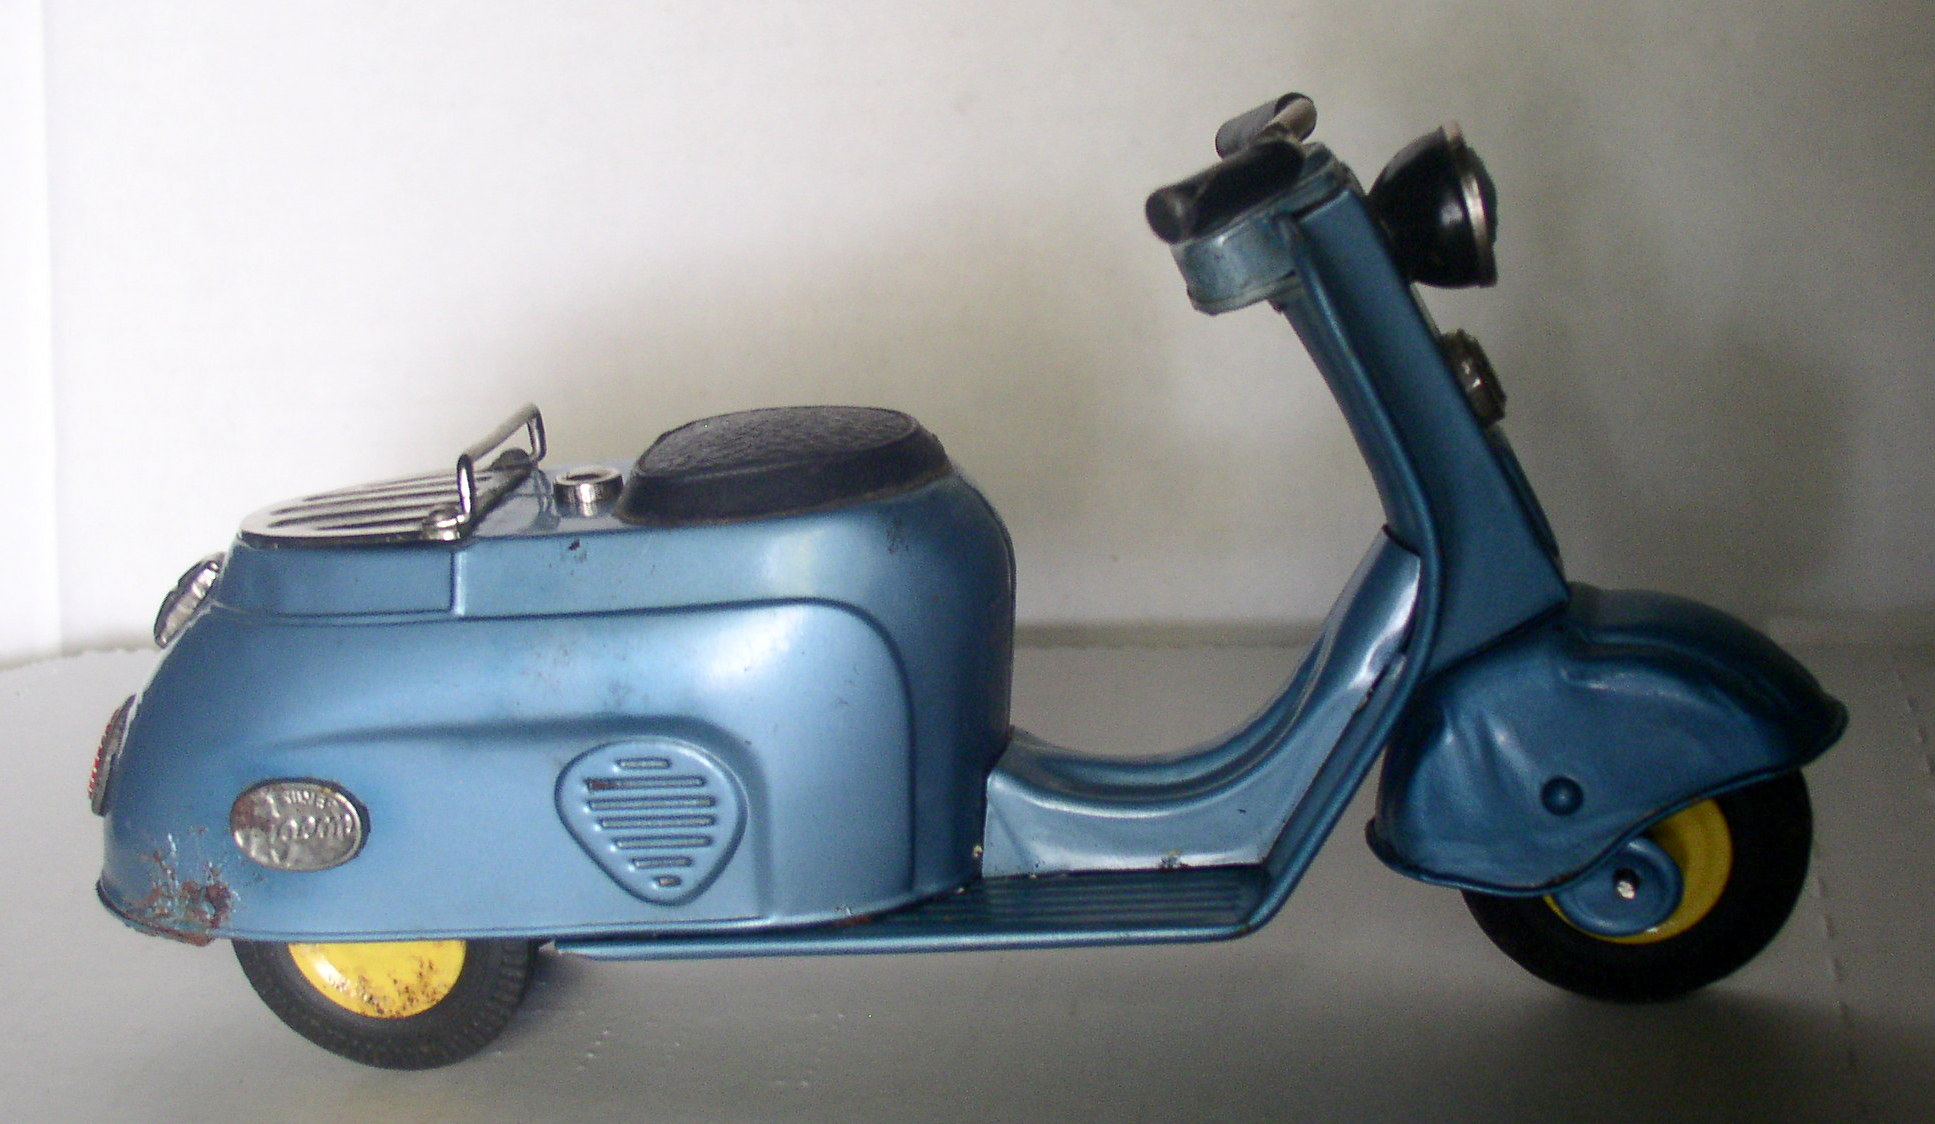 bandai silver pigeon vespa scooter � thingery previews